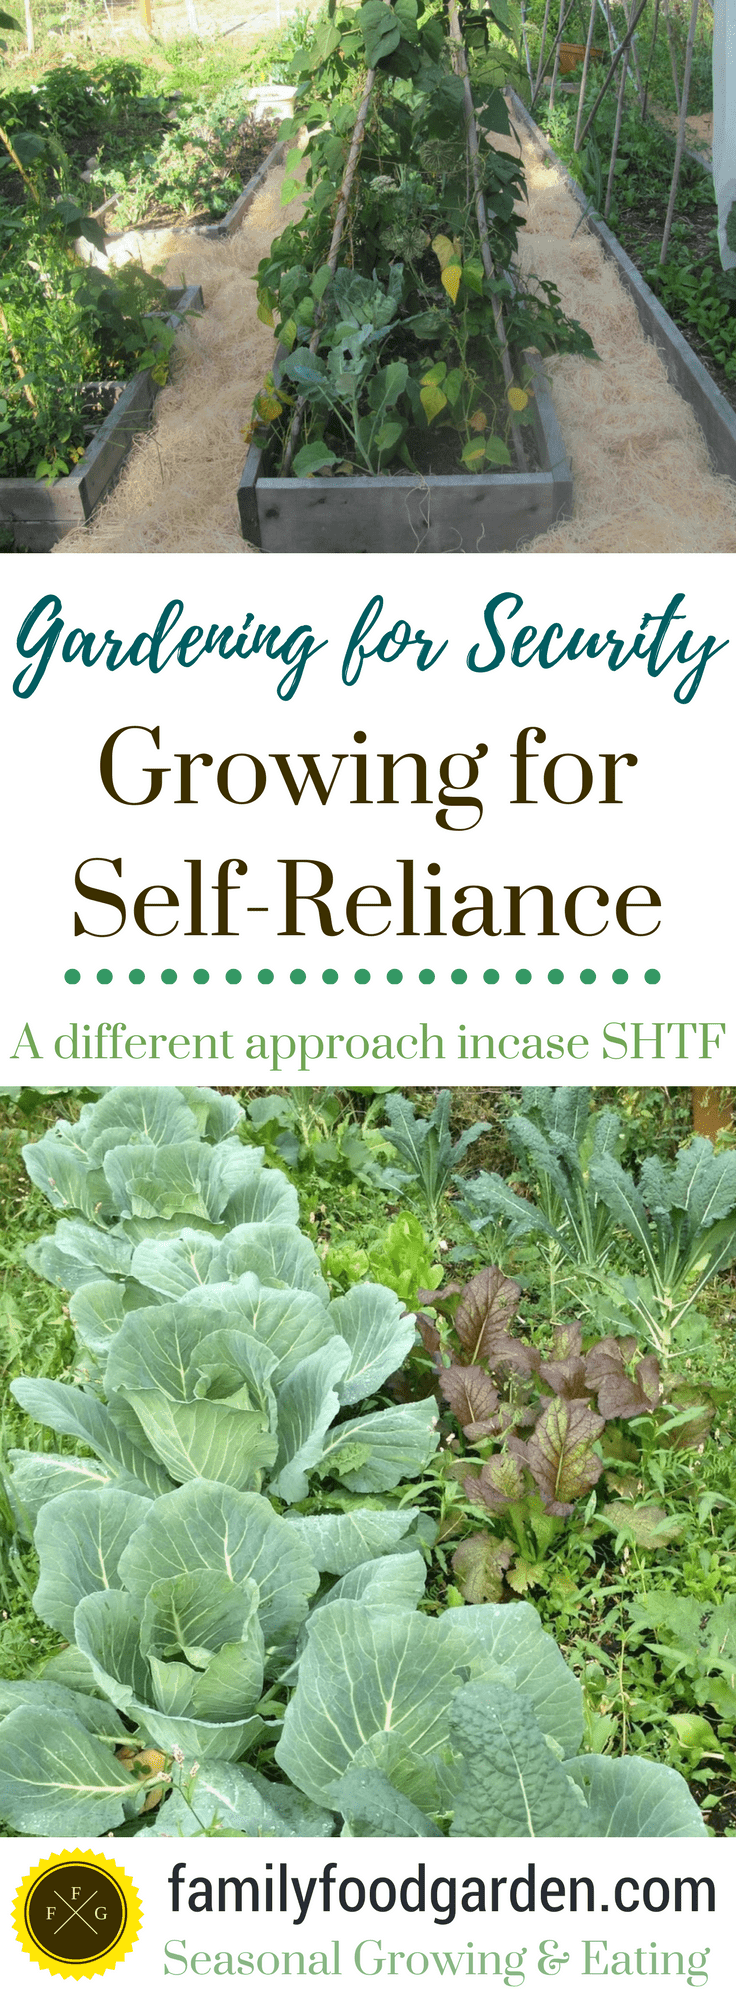 The SelfReliance Garden is part of Food garden, Organic vegetable garden, Organic gardening tips, Growing vegetables, Urban garden, Garden planning - Grow a large selfreliance garden for some food security  Self sufficient living means growing enough food for some sustainable living